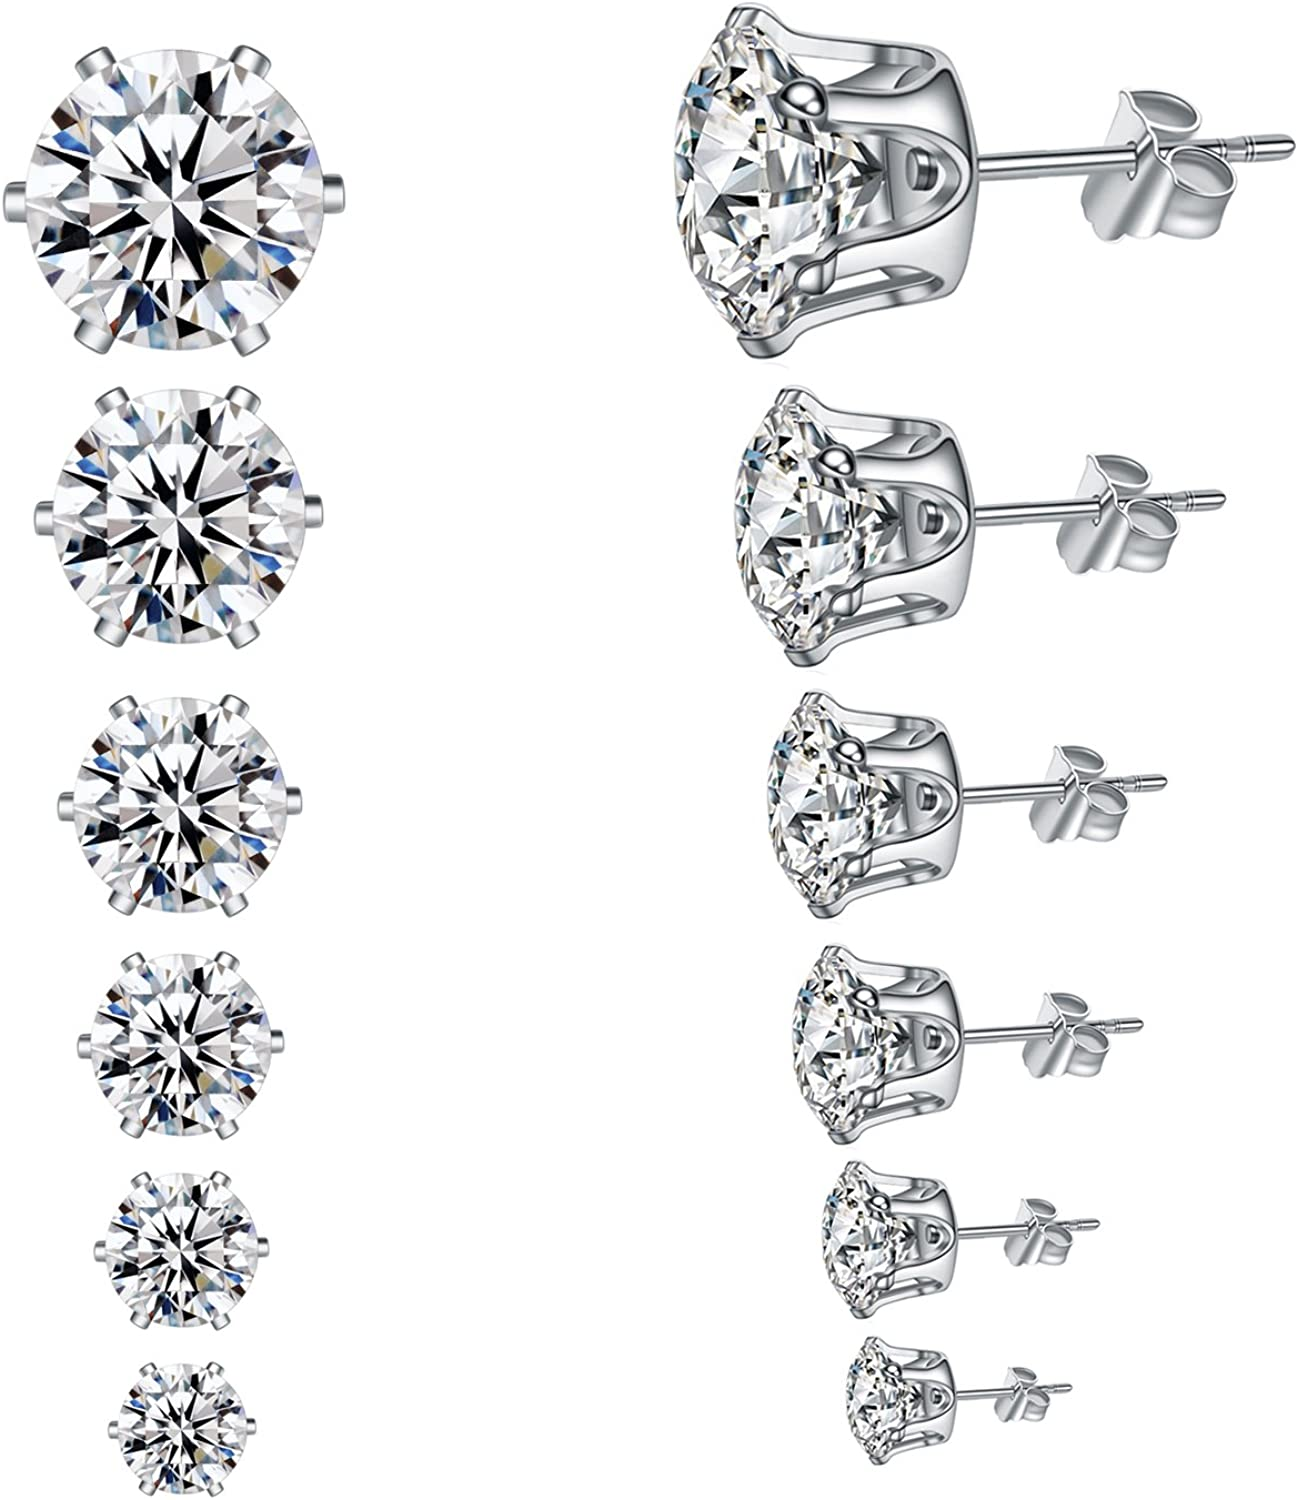 YAN & LEI Hypoallergenic Surgical Stainless Steel Round Clear Cubic Zirconia Ear Stud Earrings for Women 6 Pairs Set in 3,4,5,6,7,8 mm